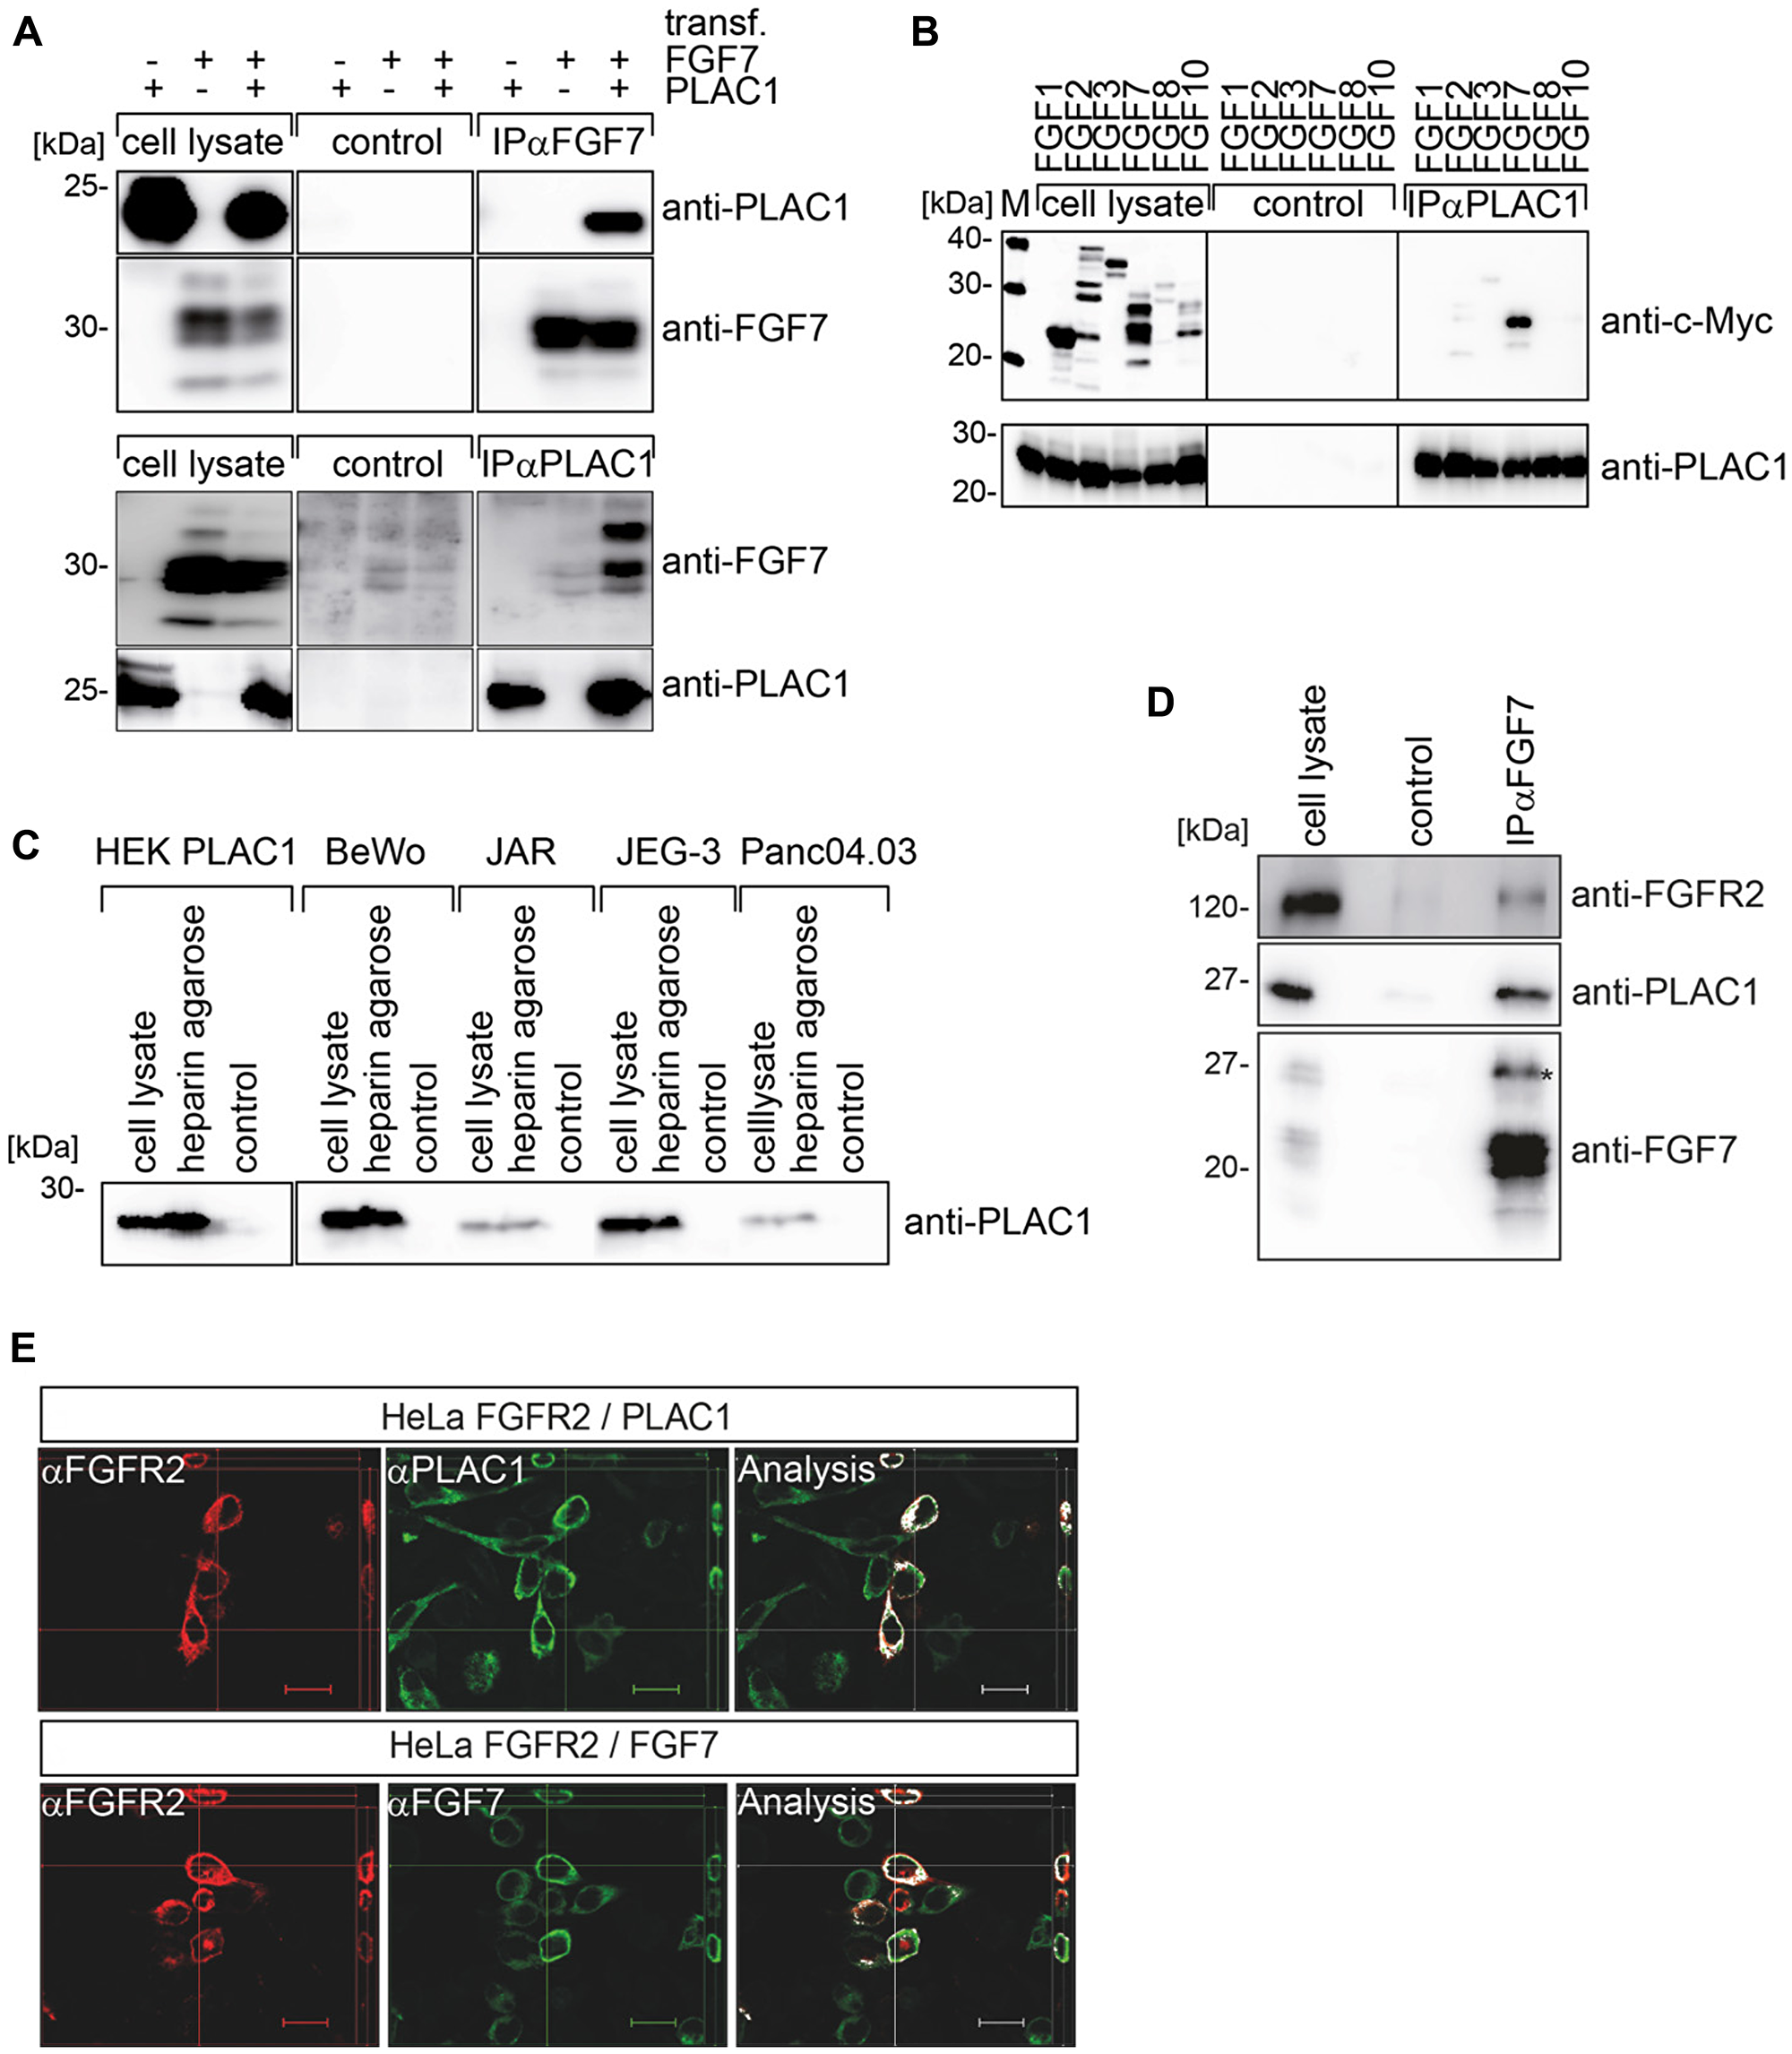 PLAC1 forms a trimeric complex with FGF7 and FGFR2IIIb in vivo.